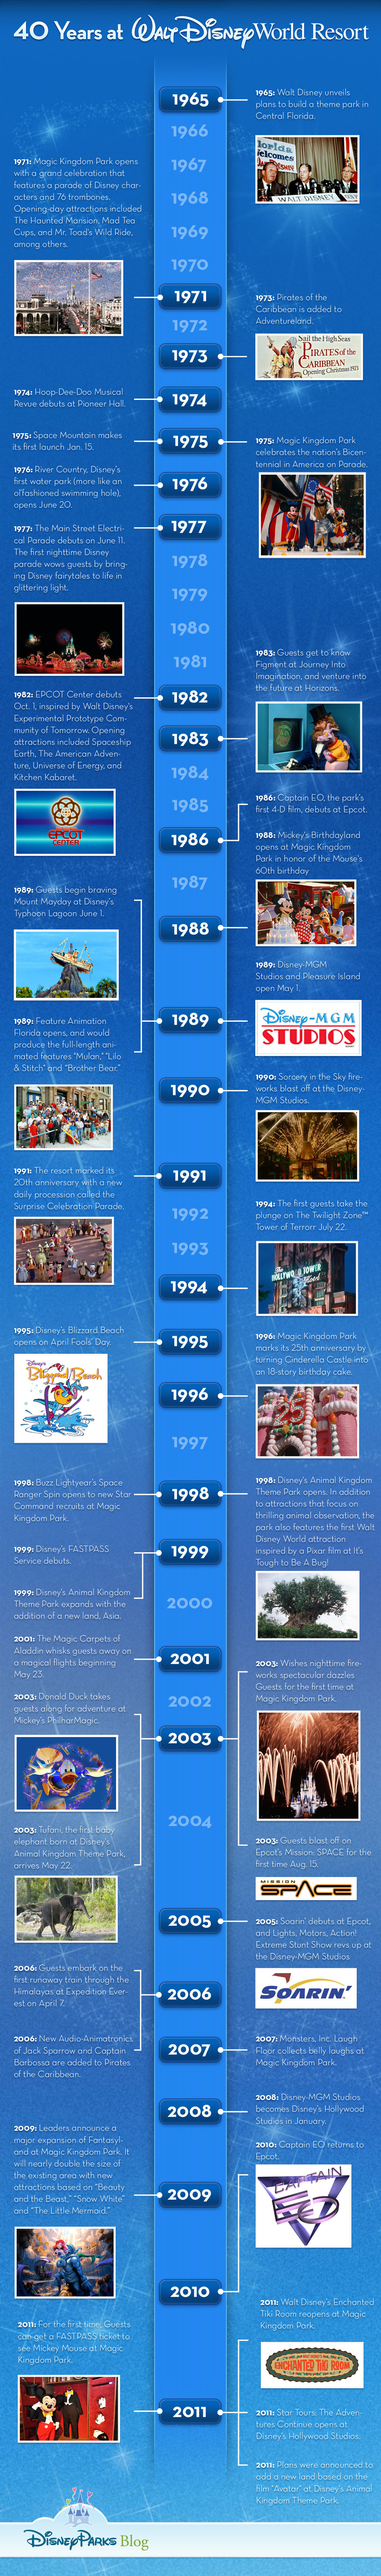 40 Years at Walt Disney World